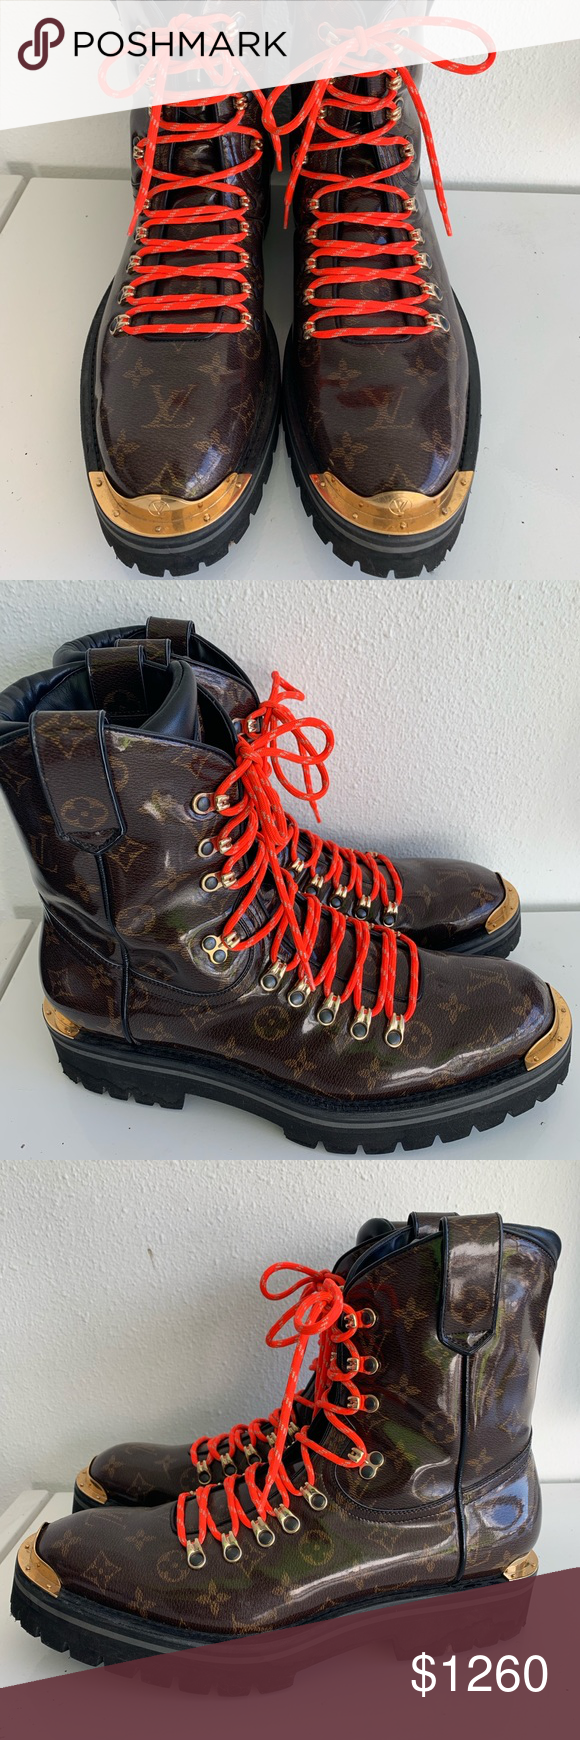 f8326e50ddeb Authentic Louis Vuitton Outland Ankle Boot Size 43 Retail   2200.00 After  taxes The LV Outland